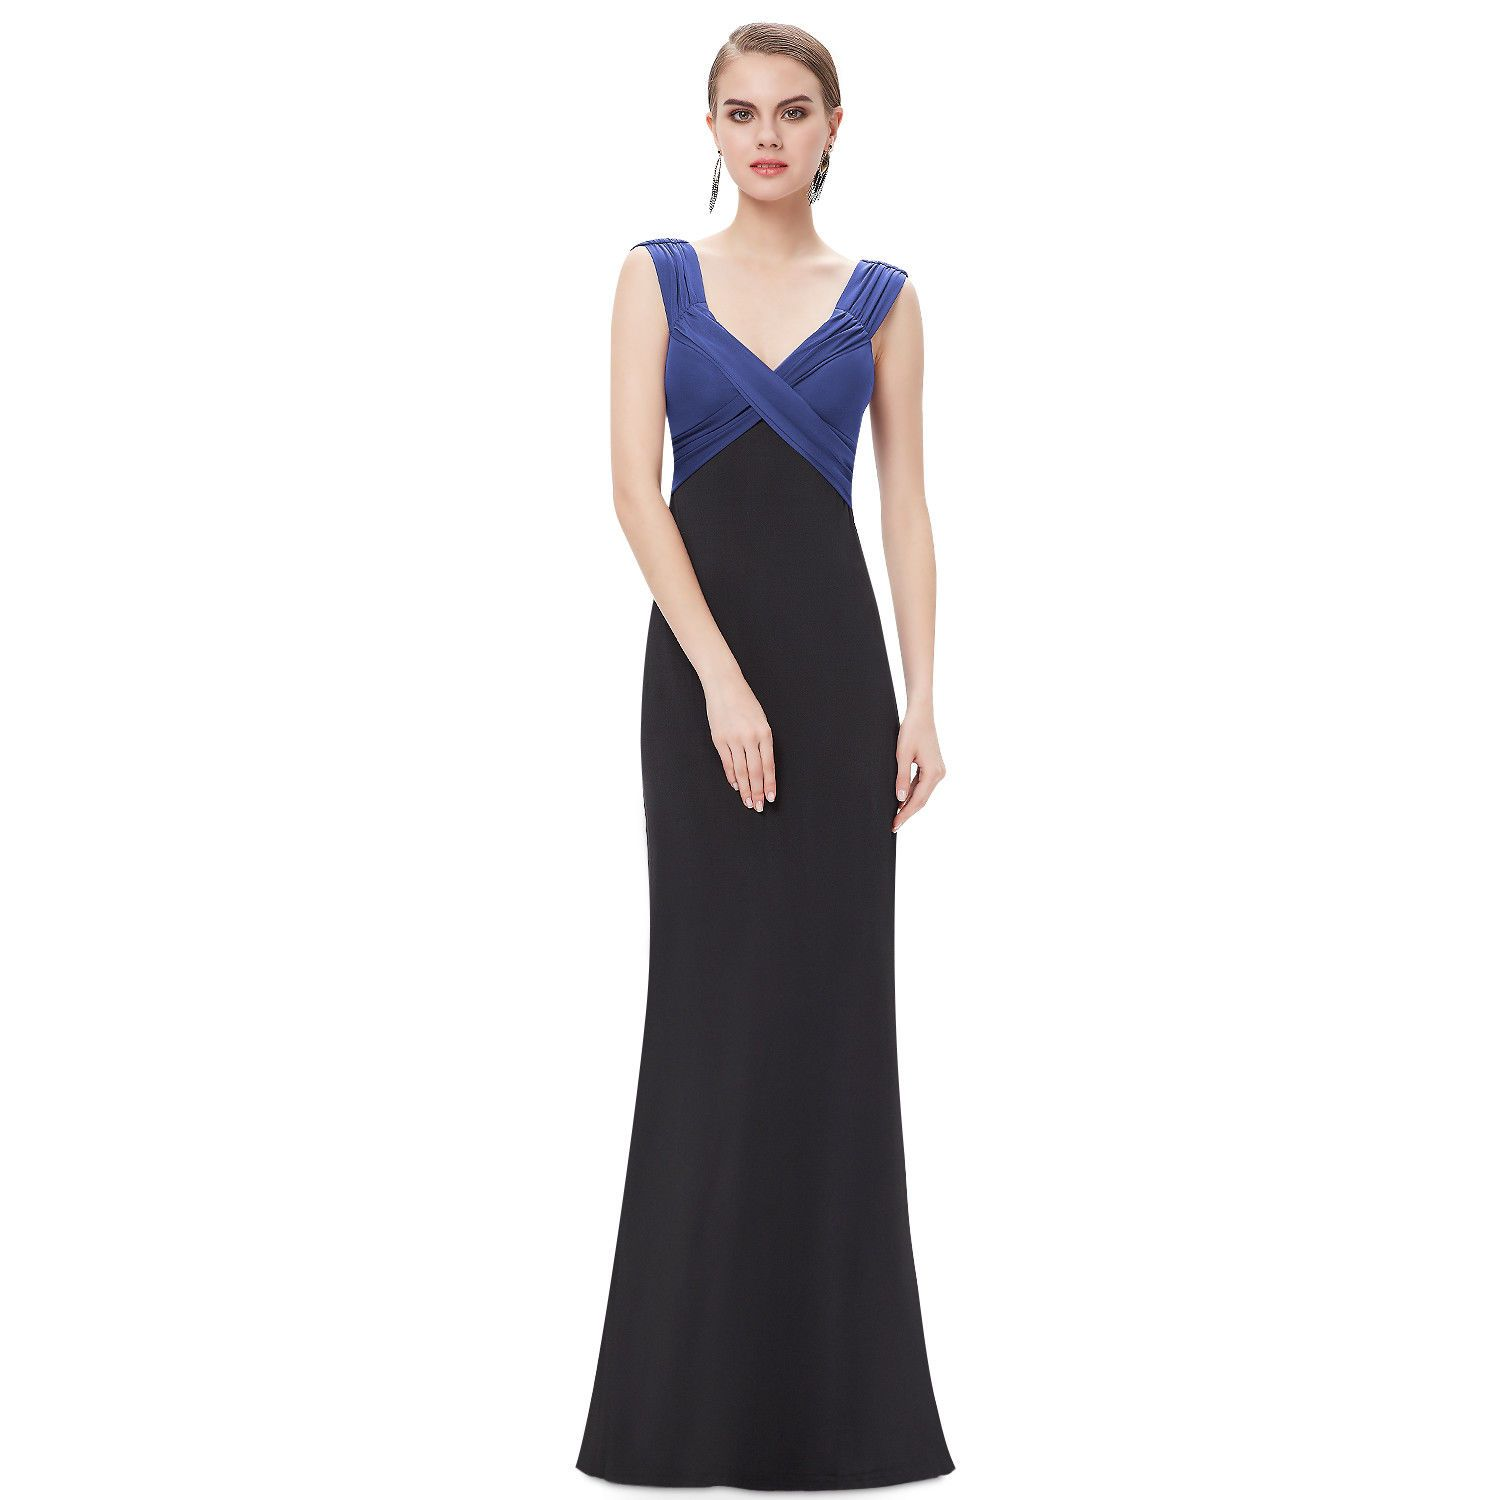 Awesome great sapphire blue bridesmaid prom evening wedding dresses